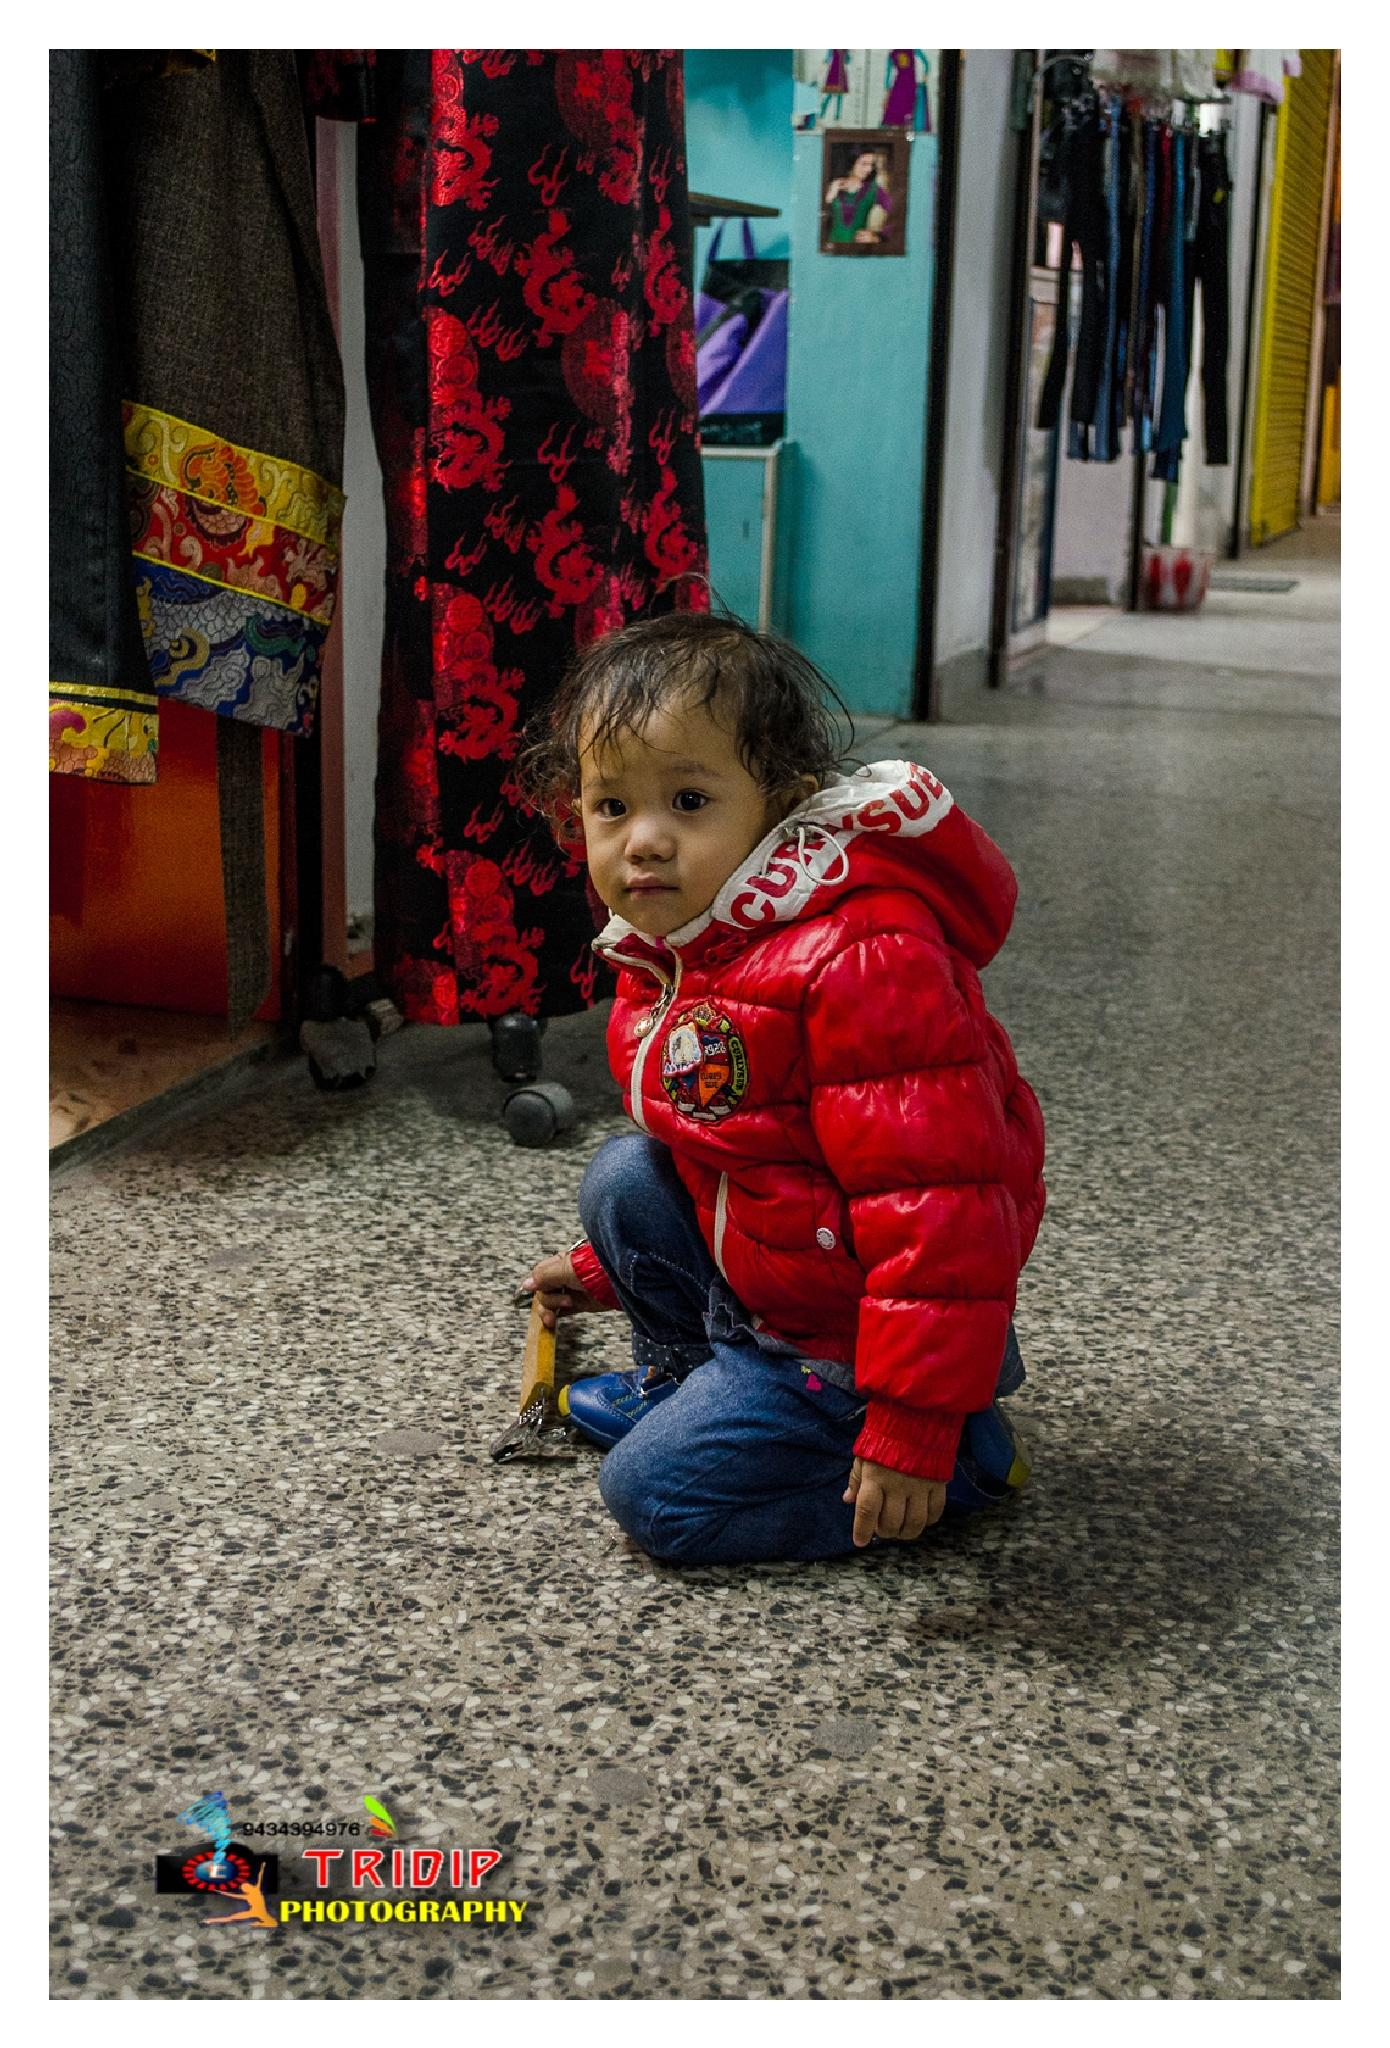 Untitled by tridip.shopin